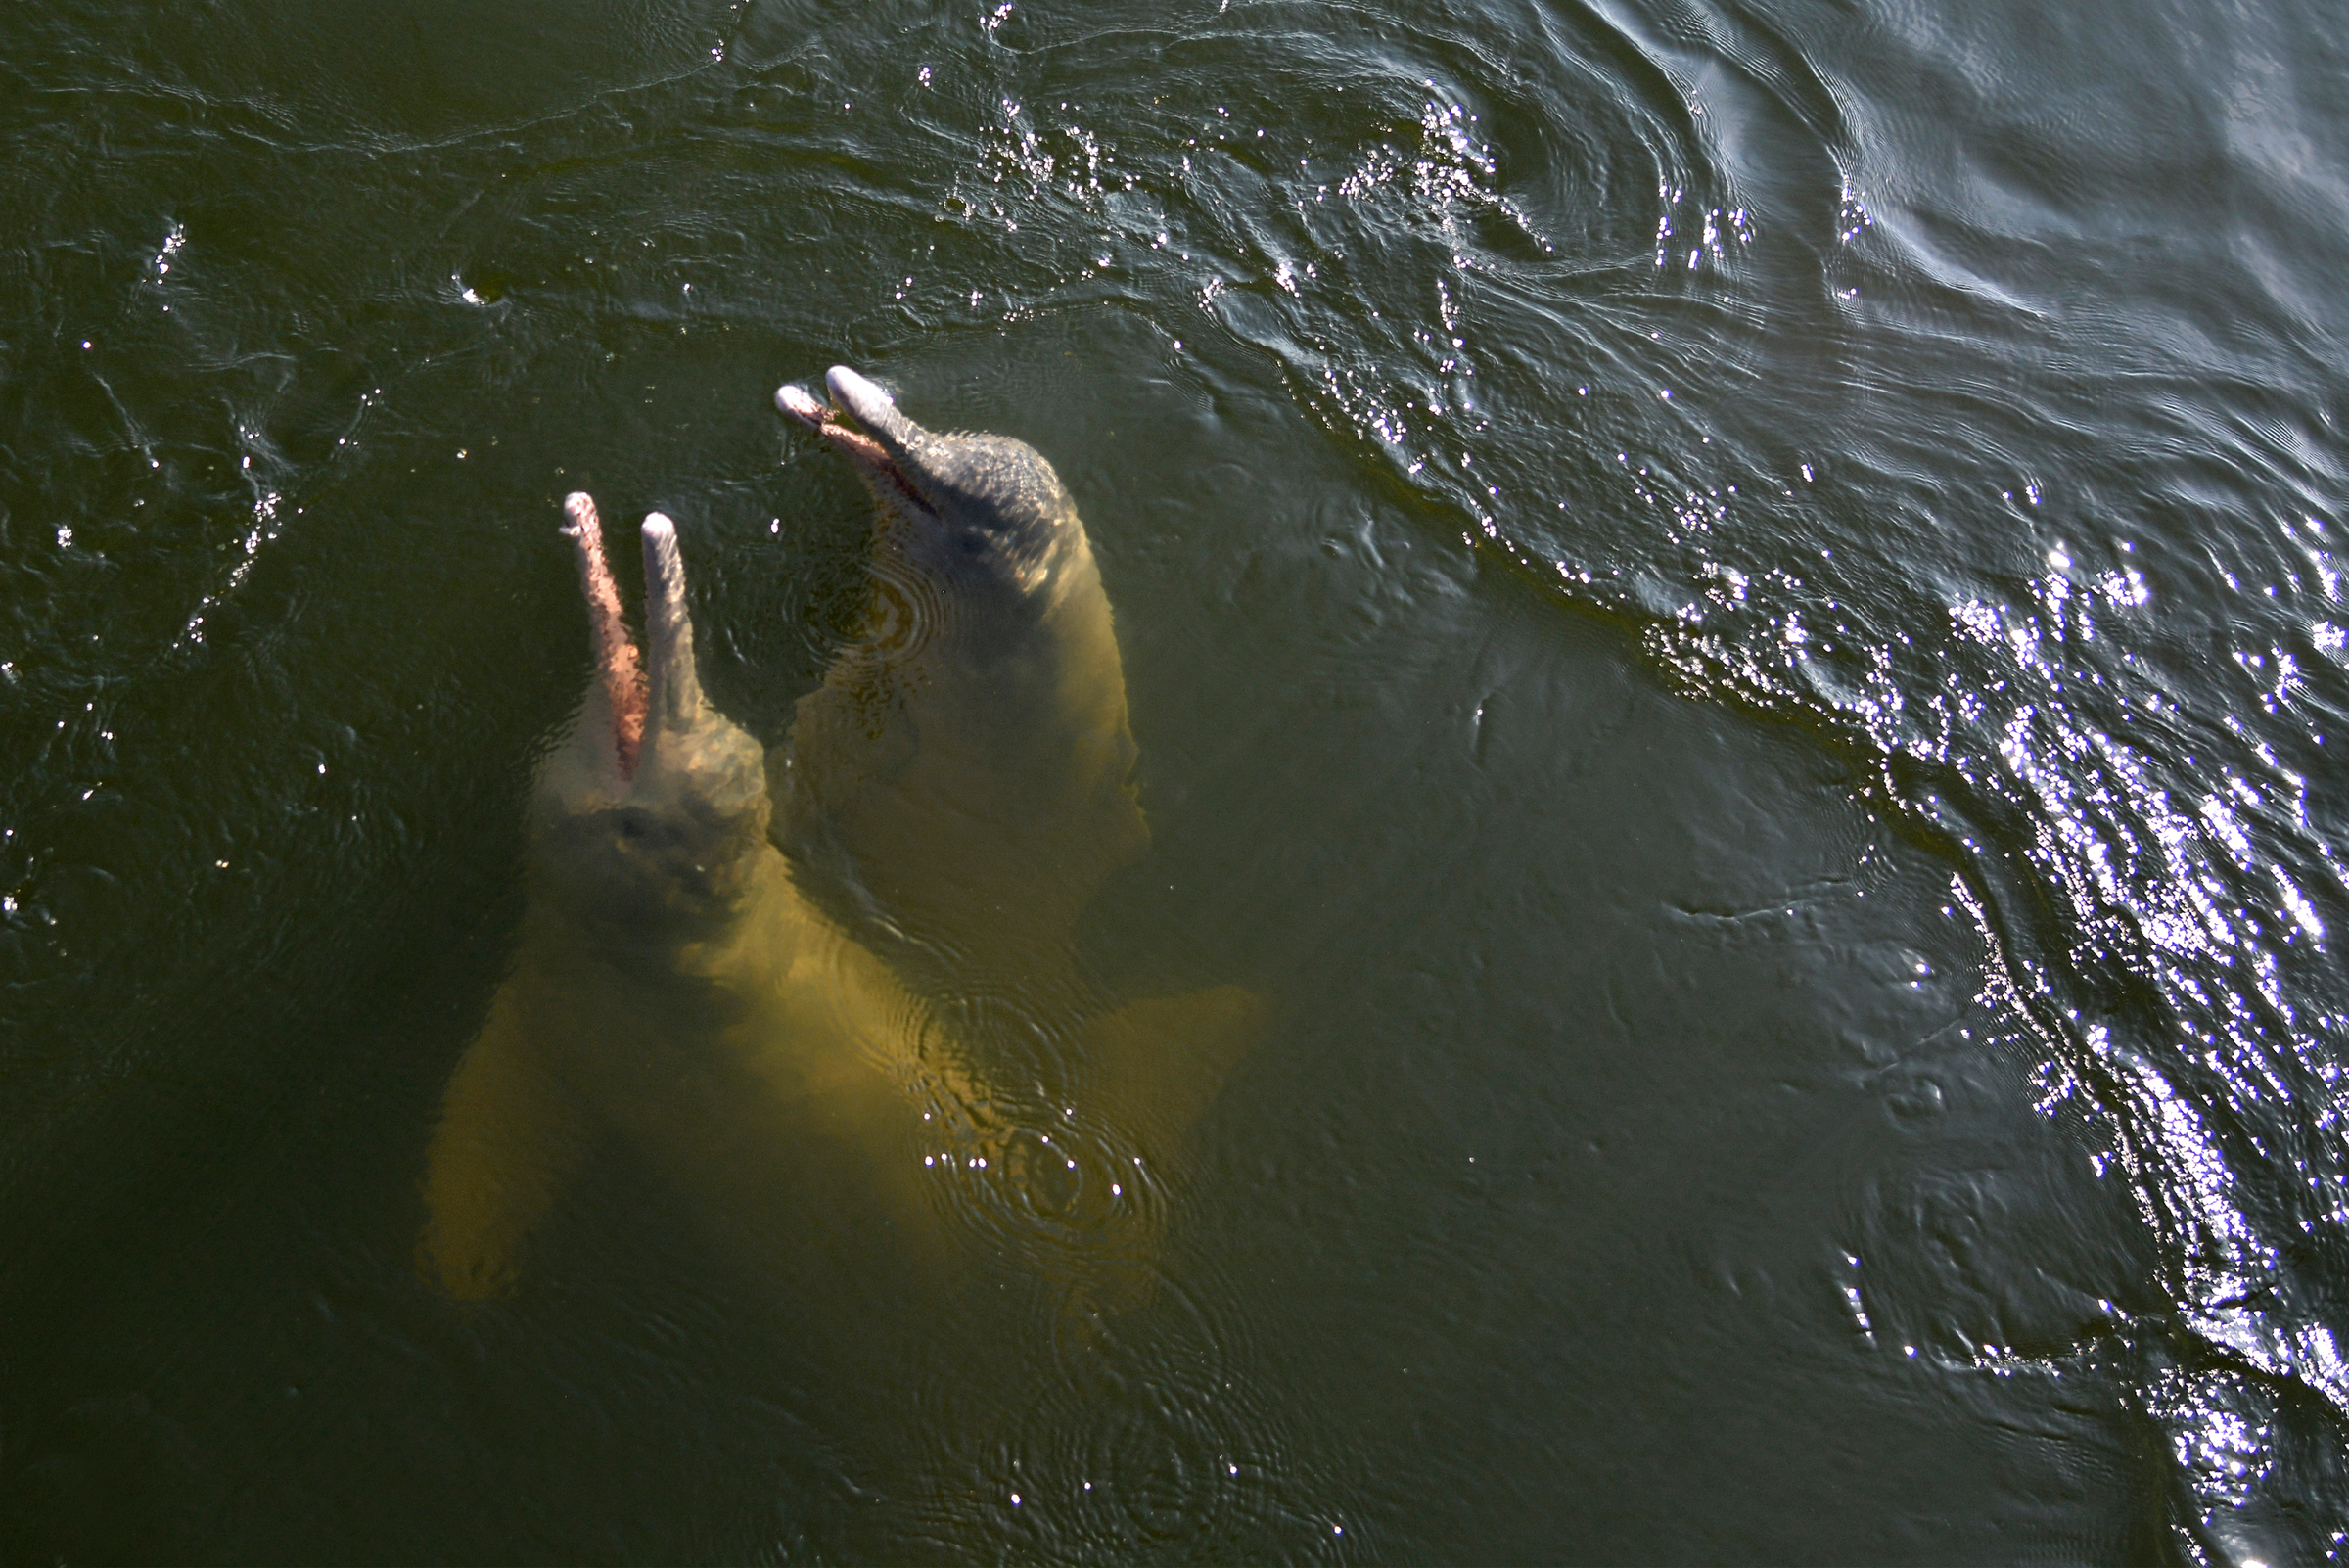 The Amzon River Dolphin